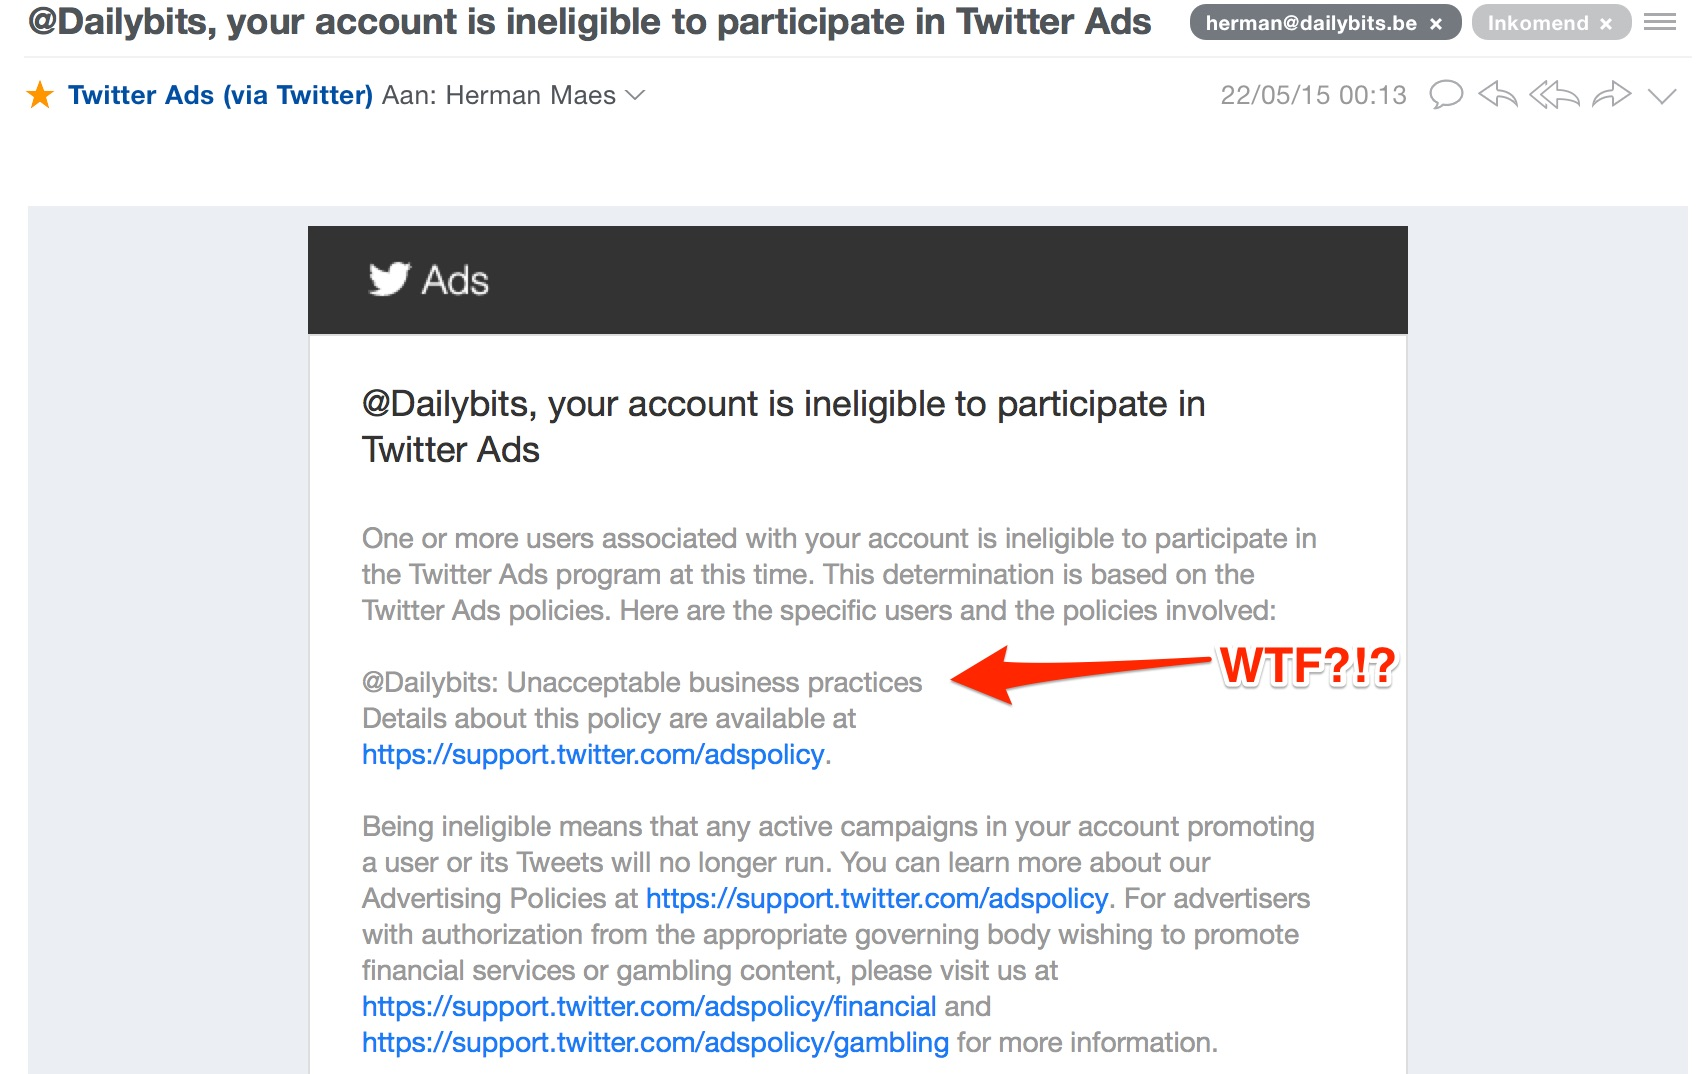 your_account_is_ineligible_to_participate_in_Twitter_Ads